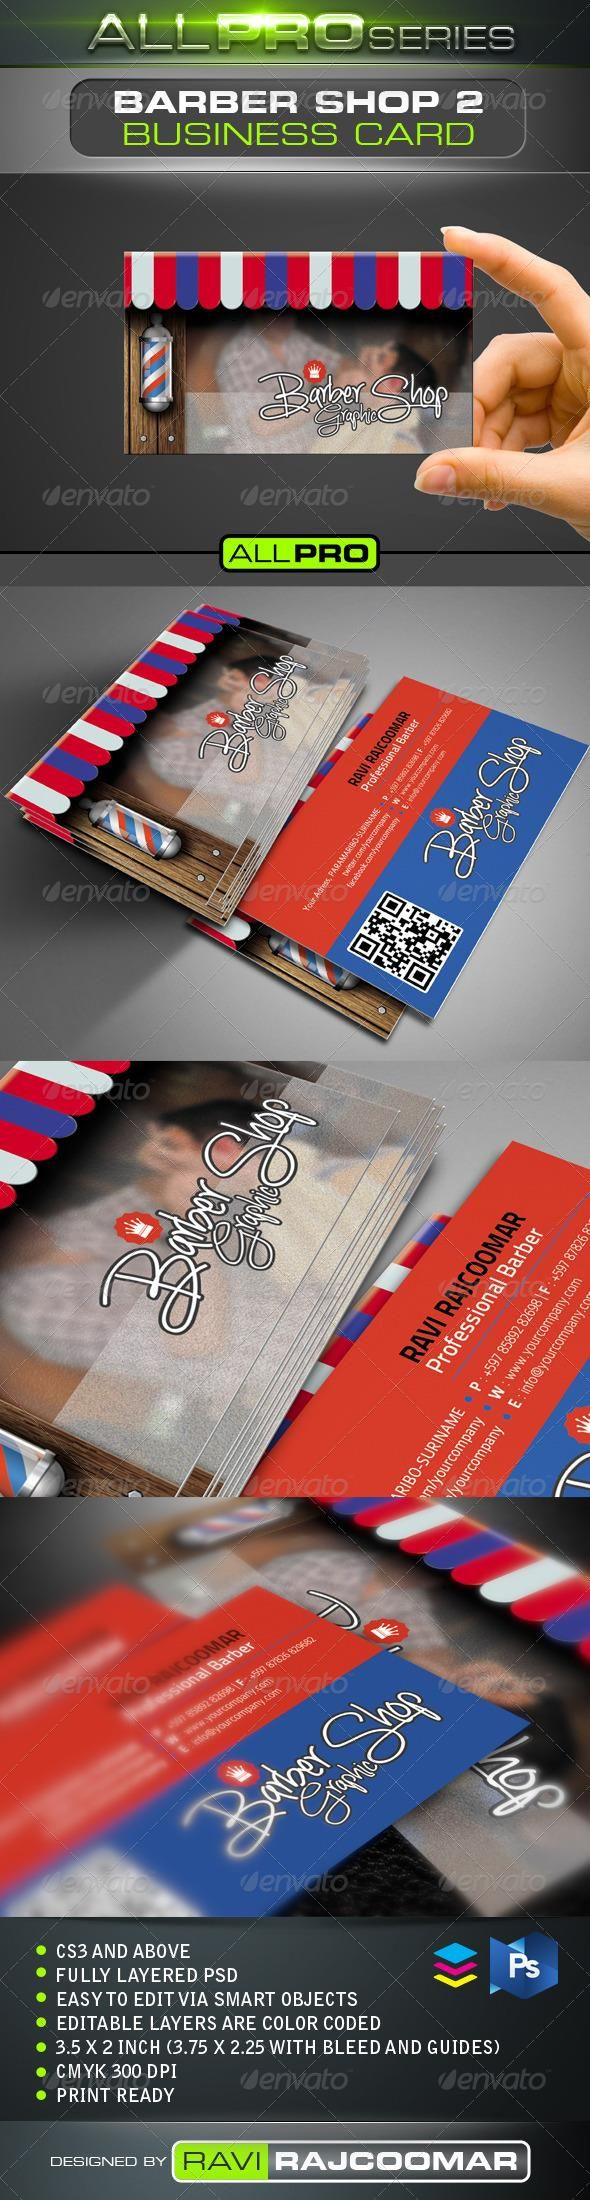 The Barbershop Business Card Vol.2